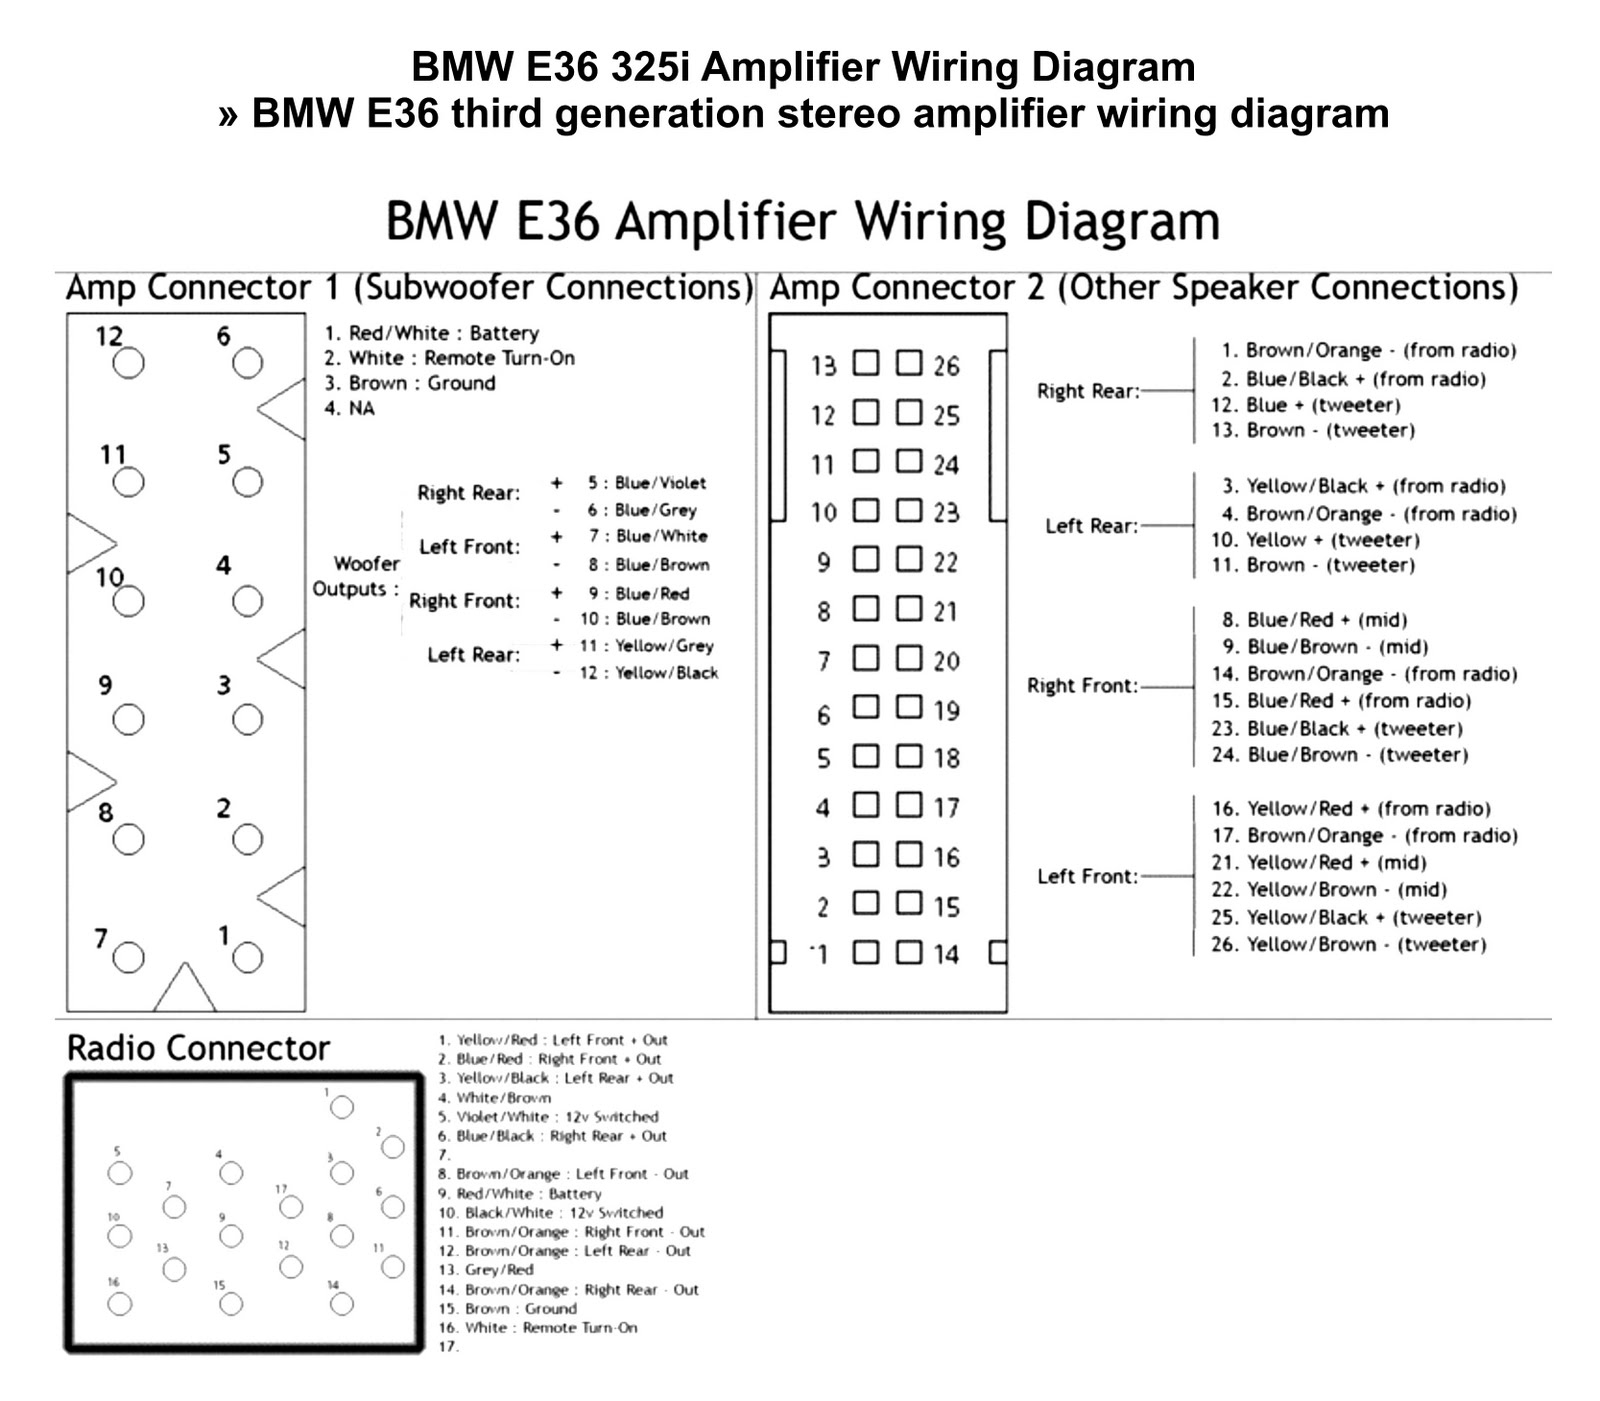 Electrical Wiring Schematic 2009 Bmw 328i Sedan Library 98 E36 Diagram I0 Wp Com 3 Bp Blogspot Jl9dx7plo78 Tifikzyje 2007 Coupe Radio